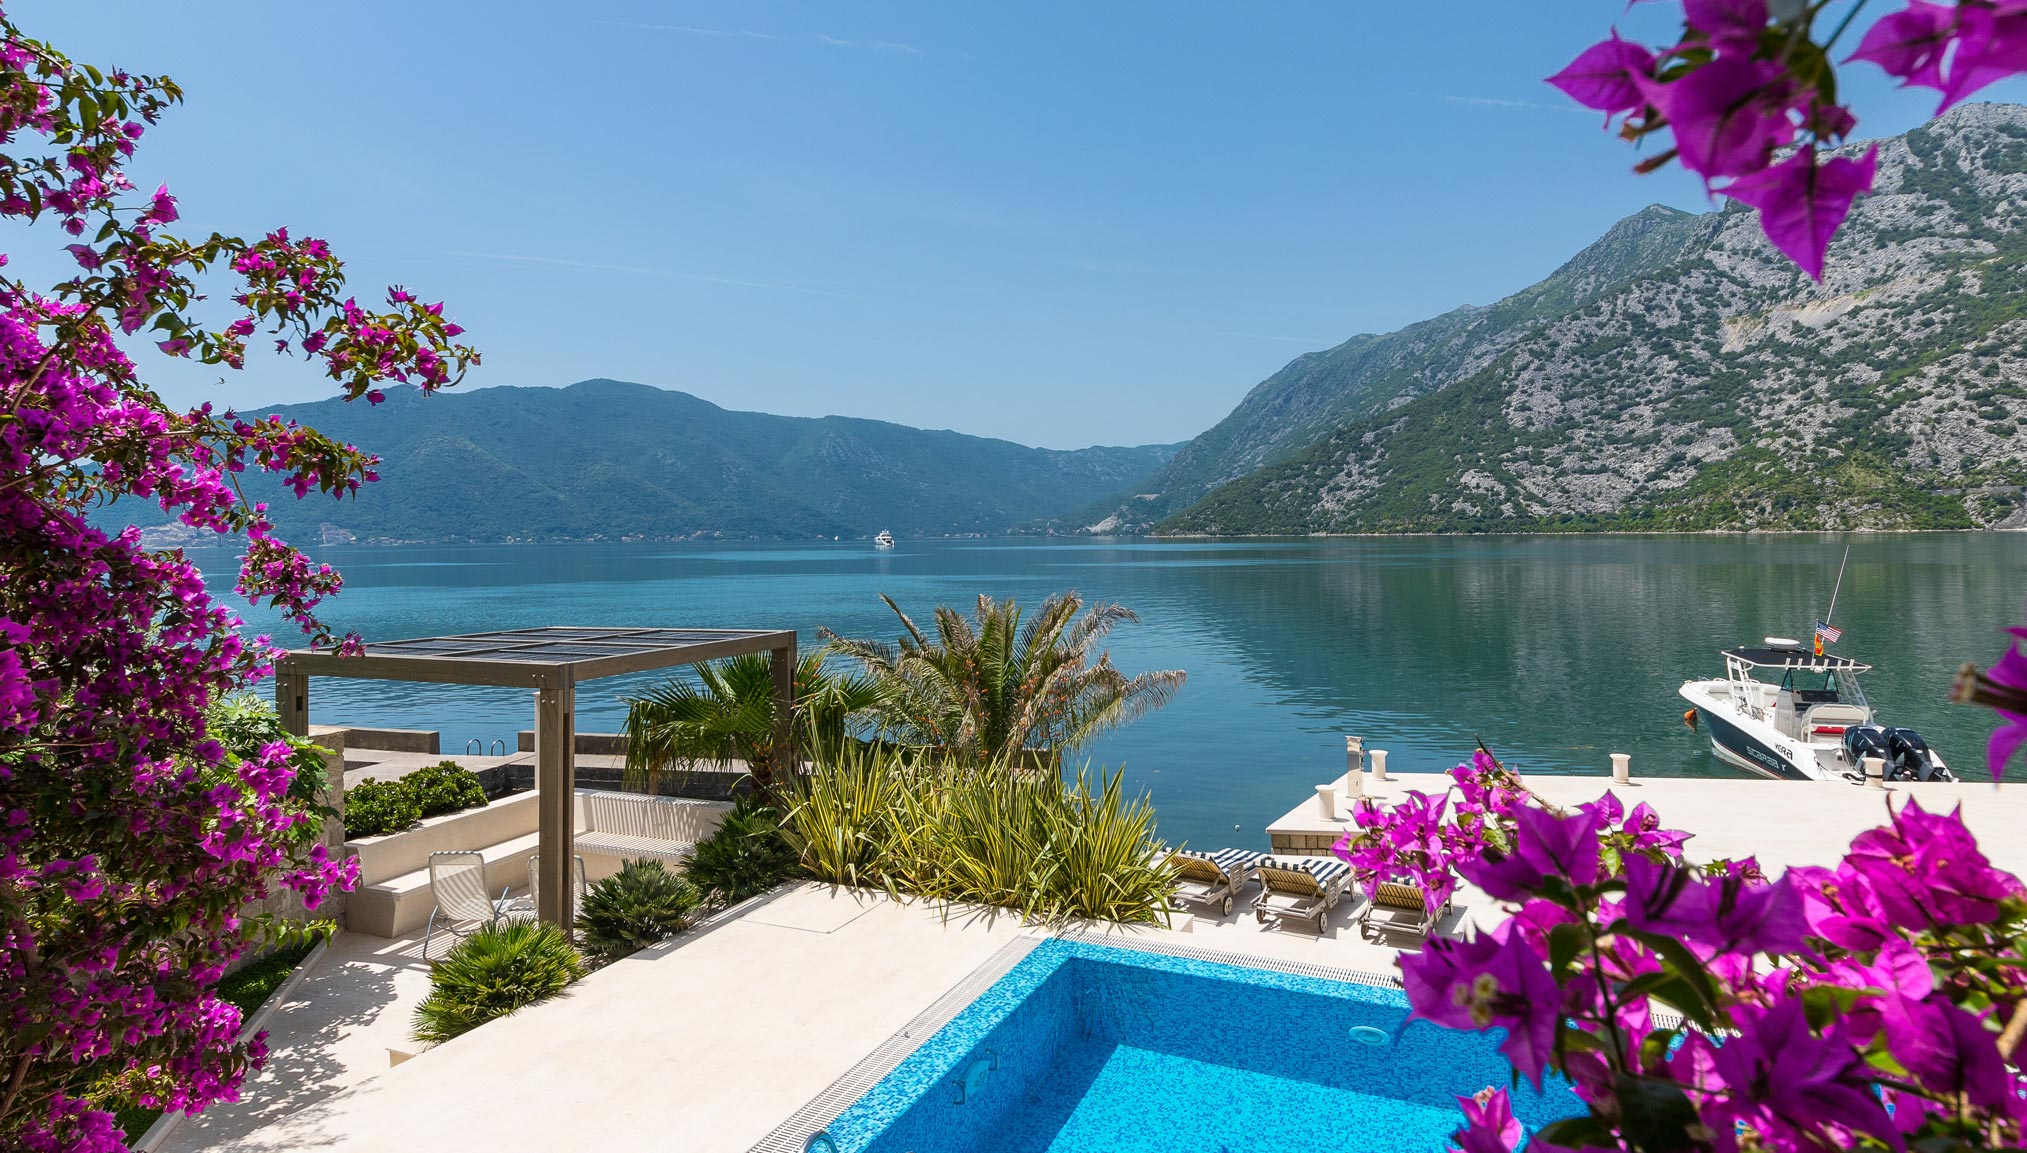 Luxury-waterfront-villa-with-swimming-pool-for-sale-in-Kotor (2).jpg